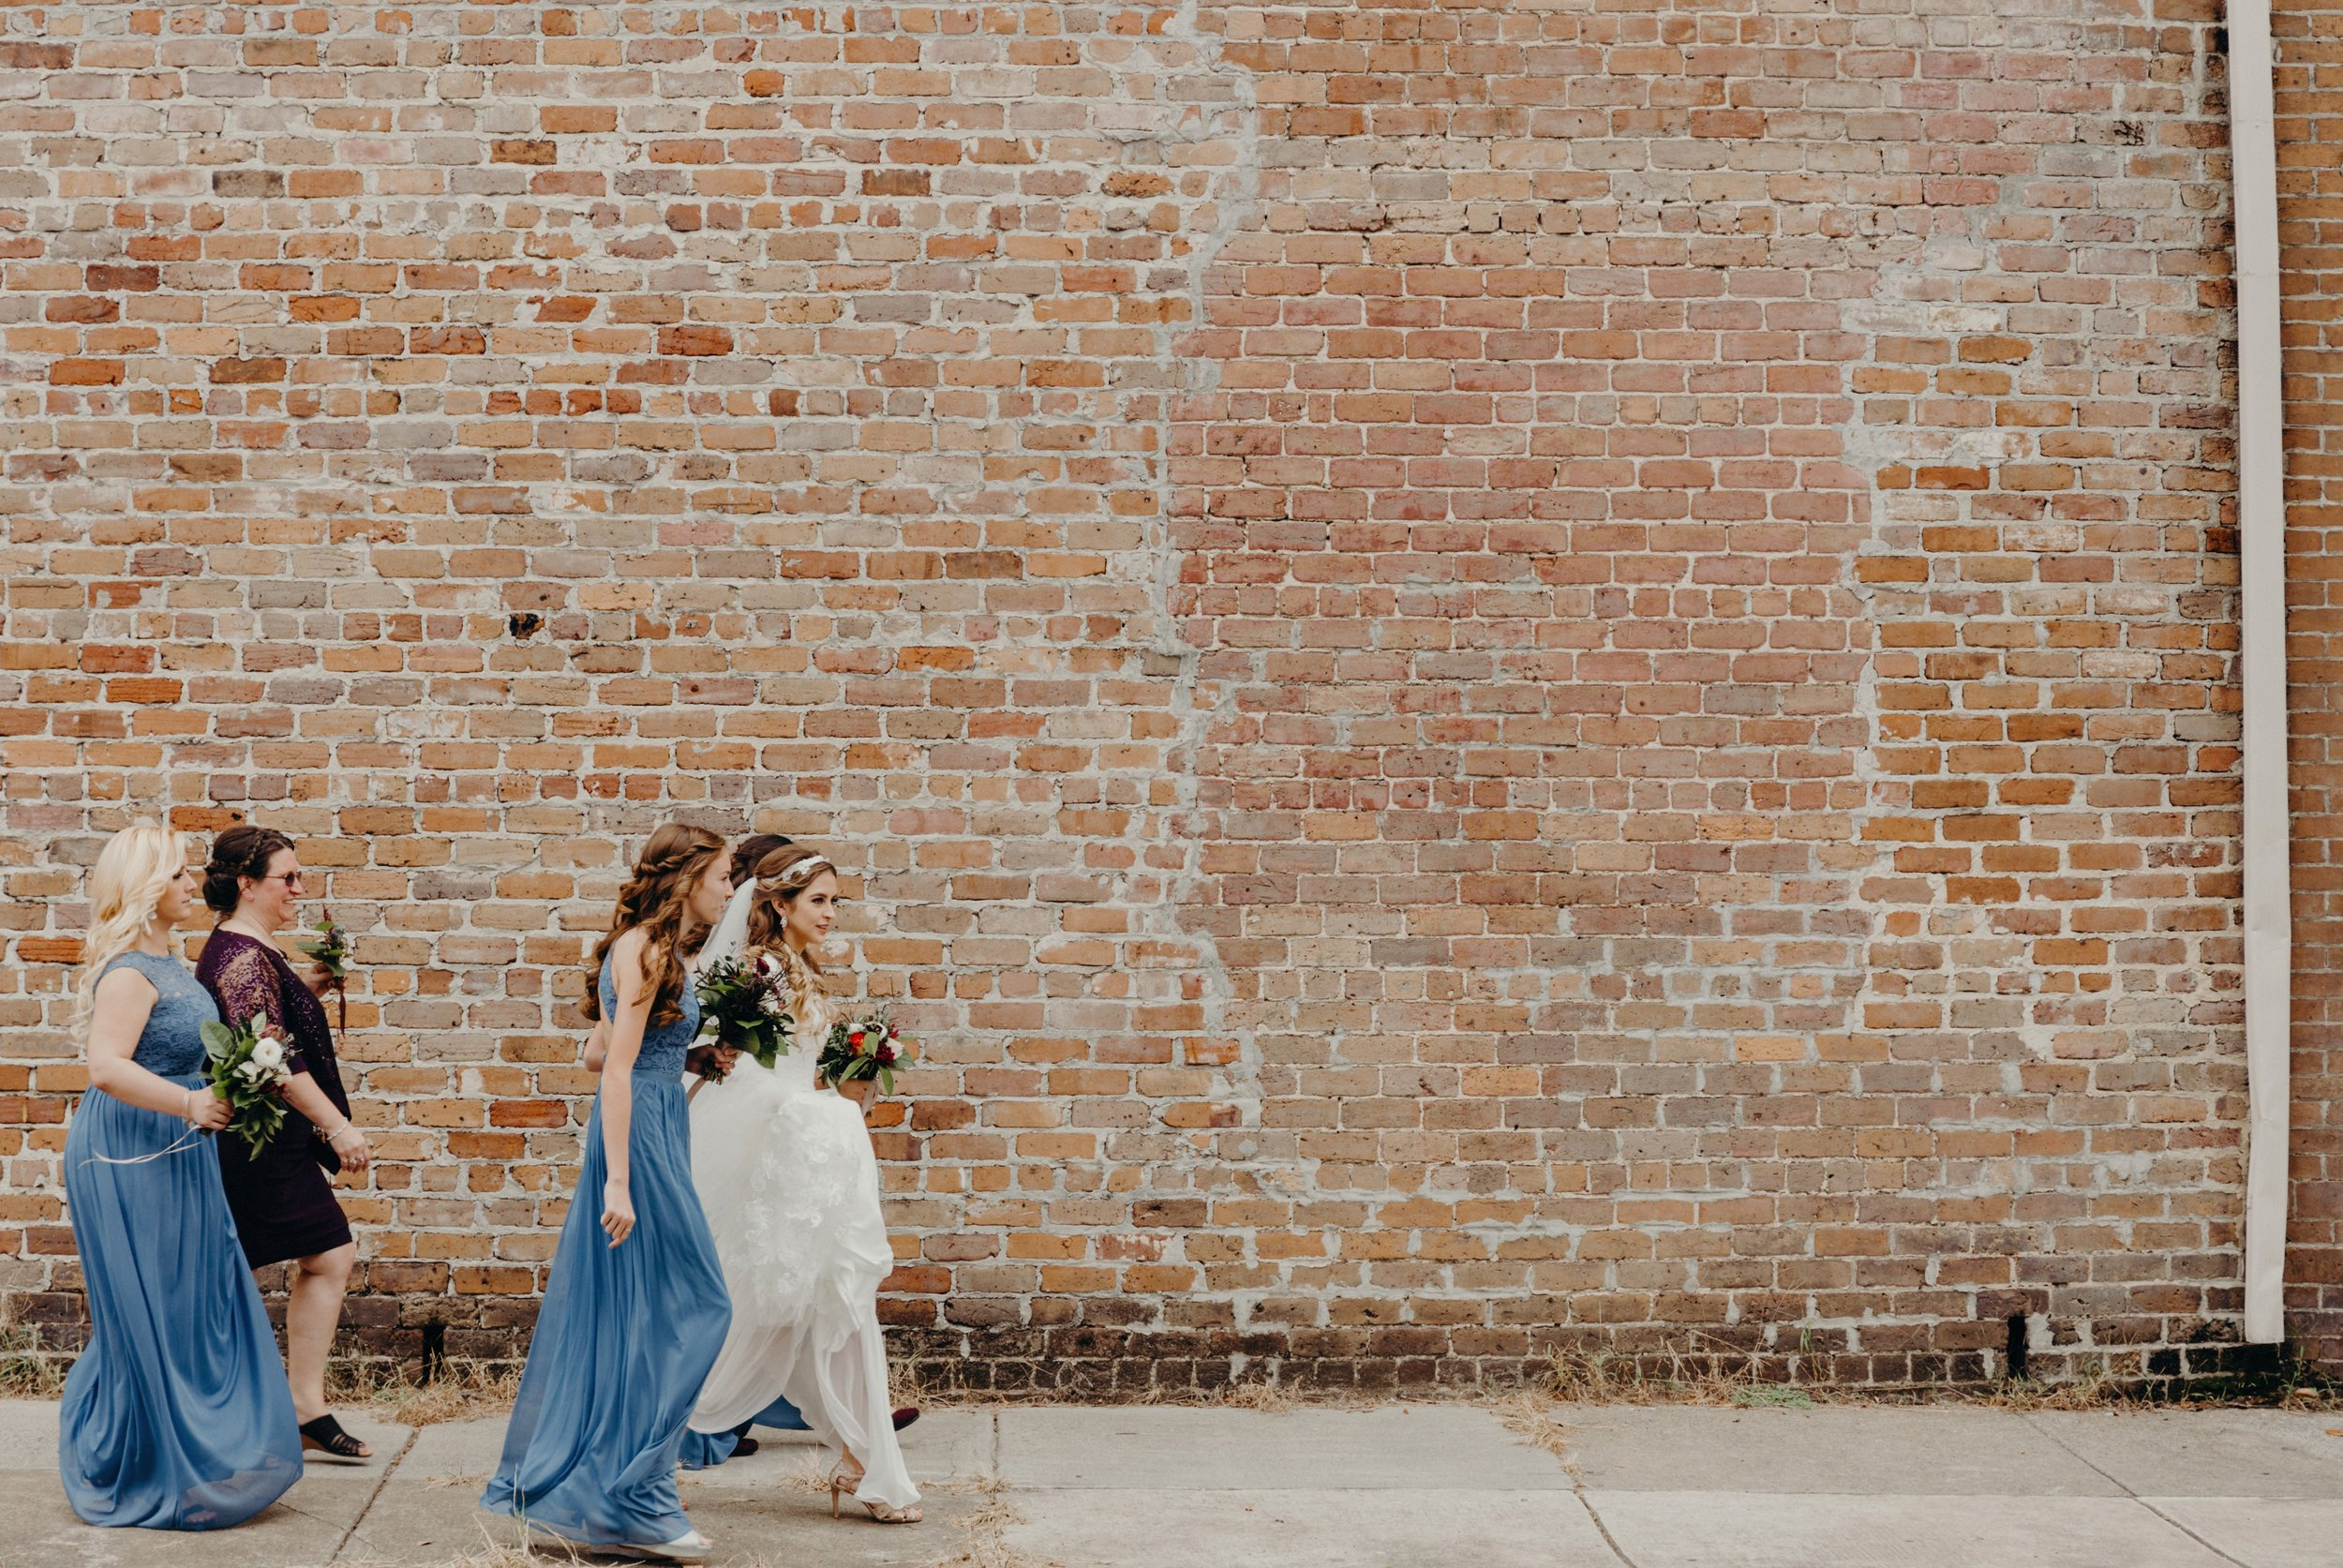 Grant and Carlynn - A destination wedding filled with southern charm.